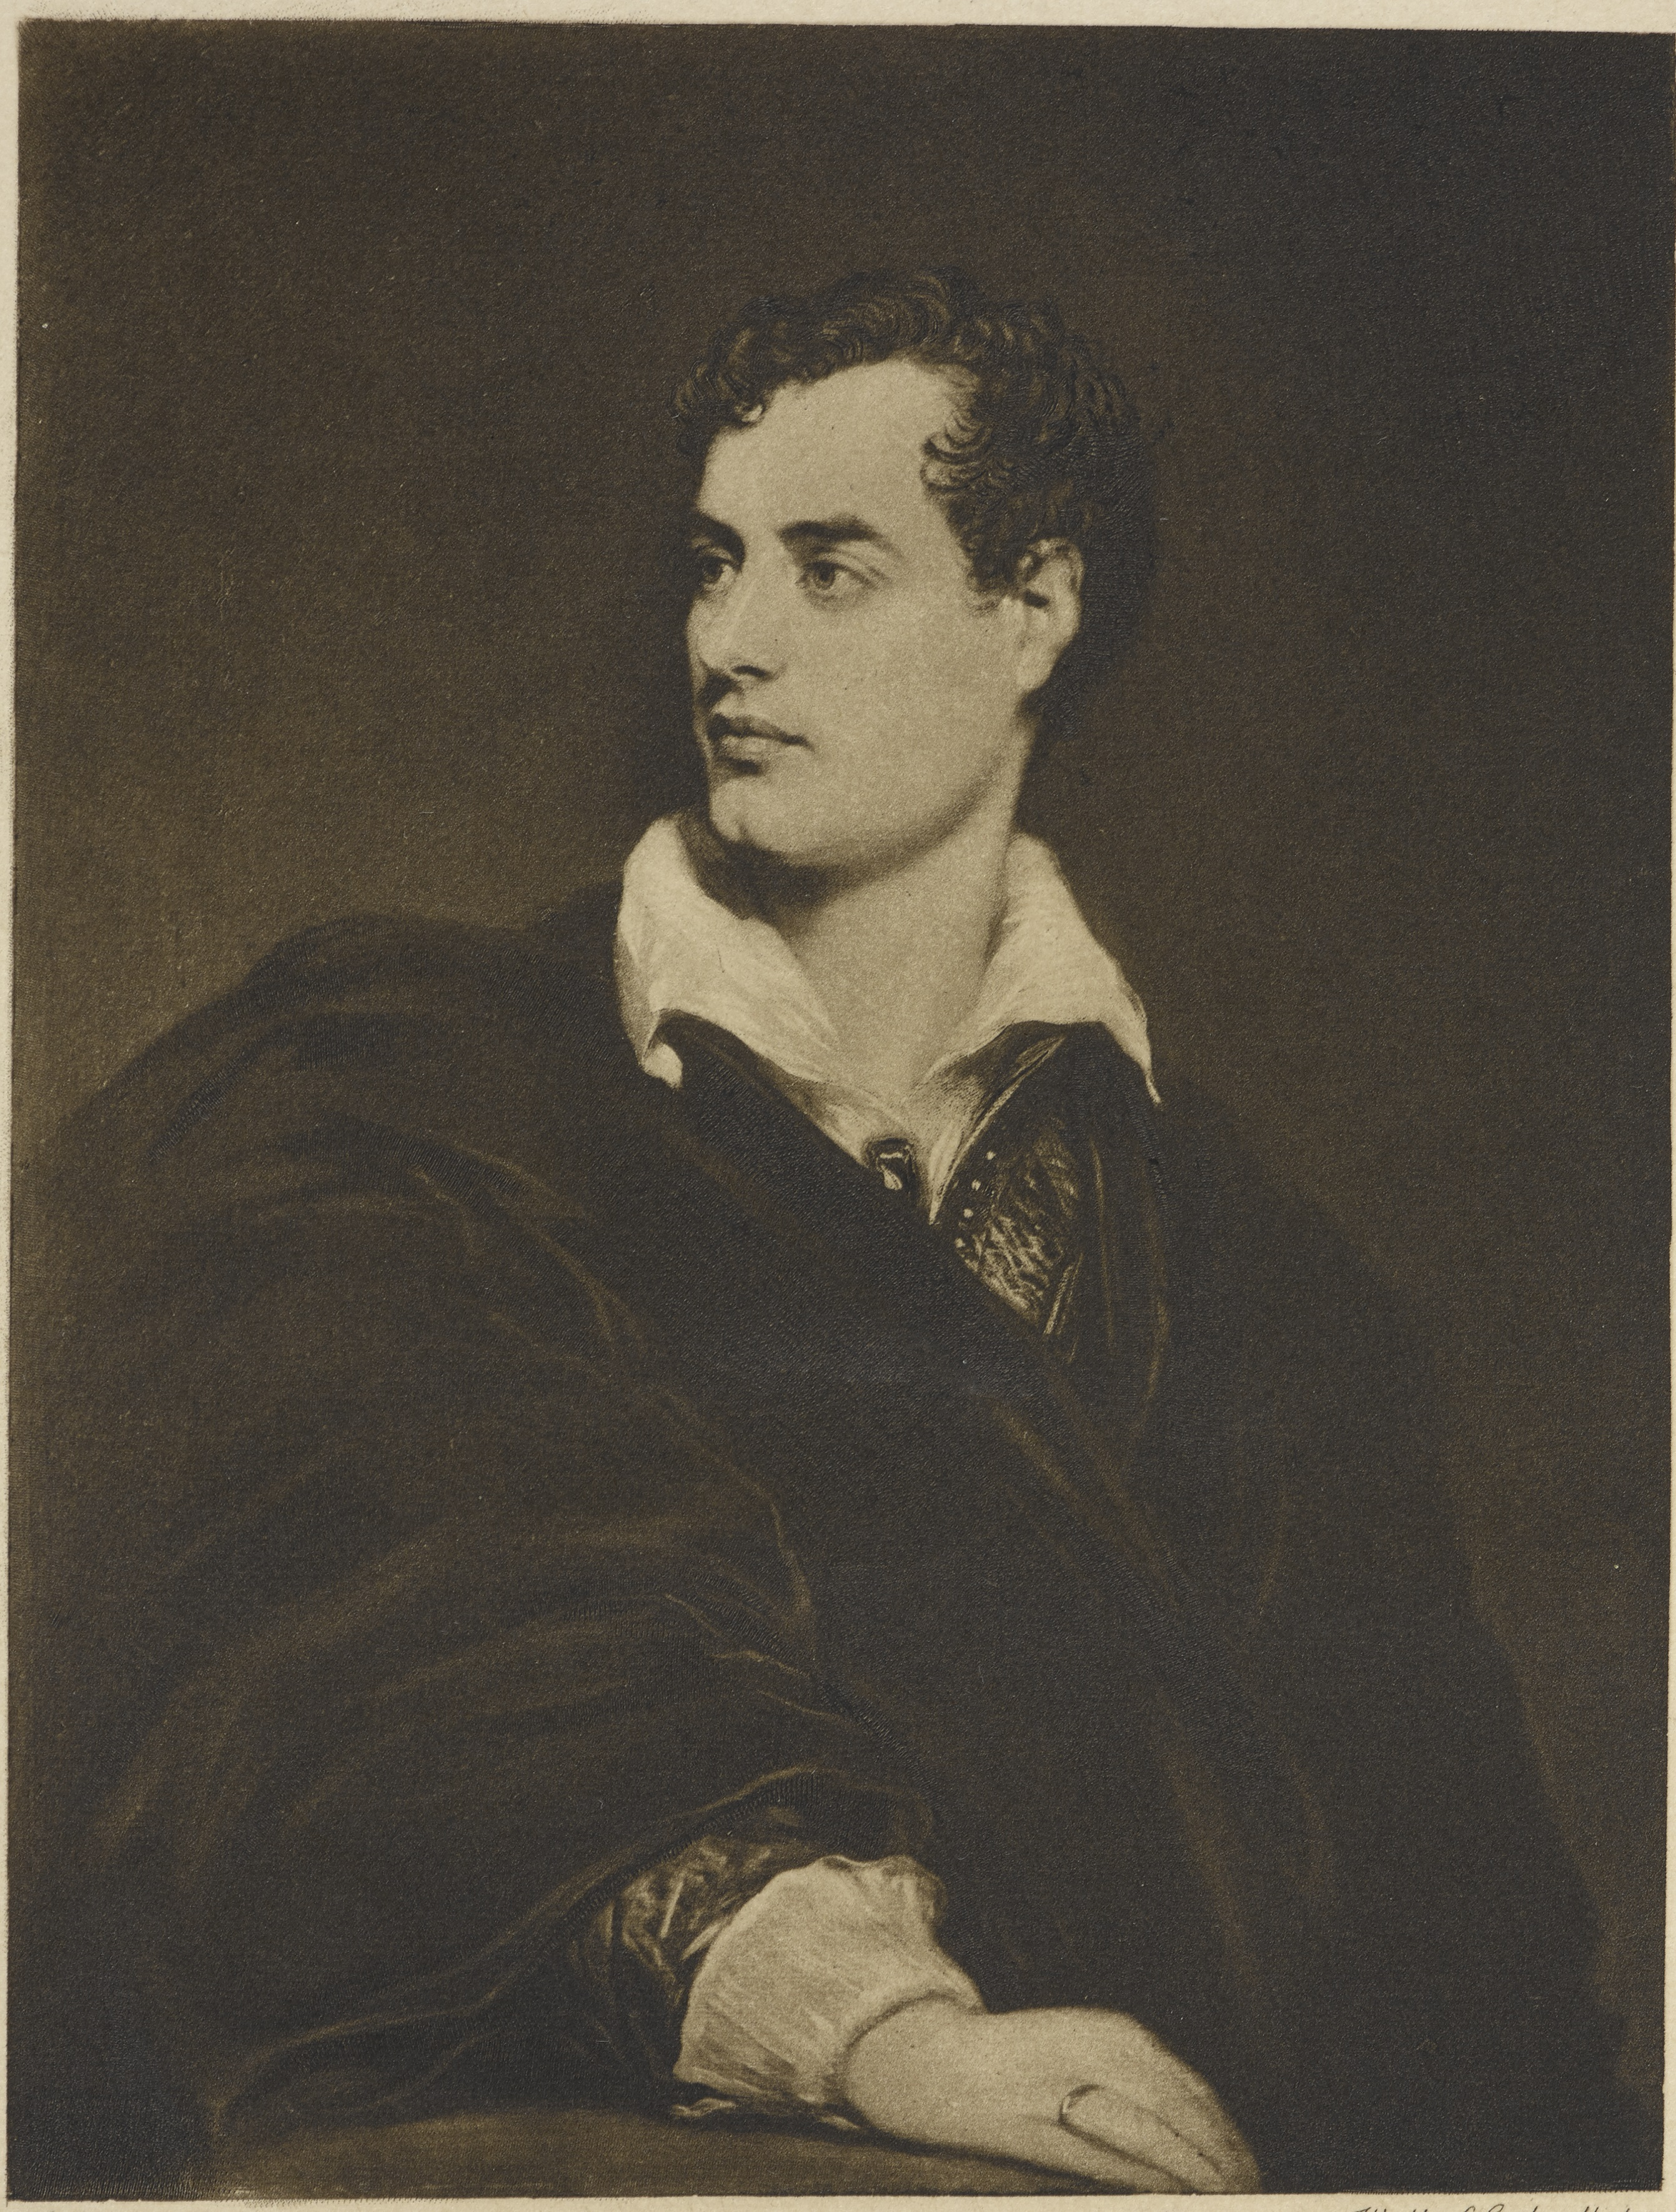 Portrait of Lord Byron, by Walker & Cockerell, after Thomas Phillips. © British Library Board.